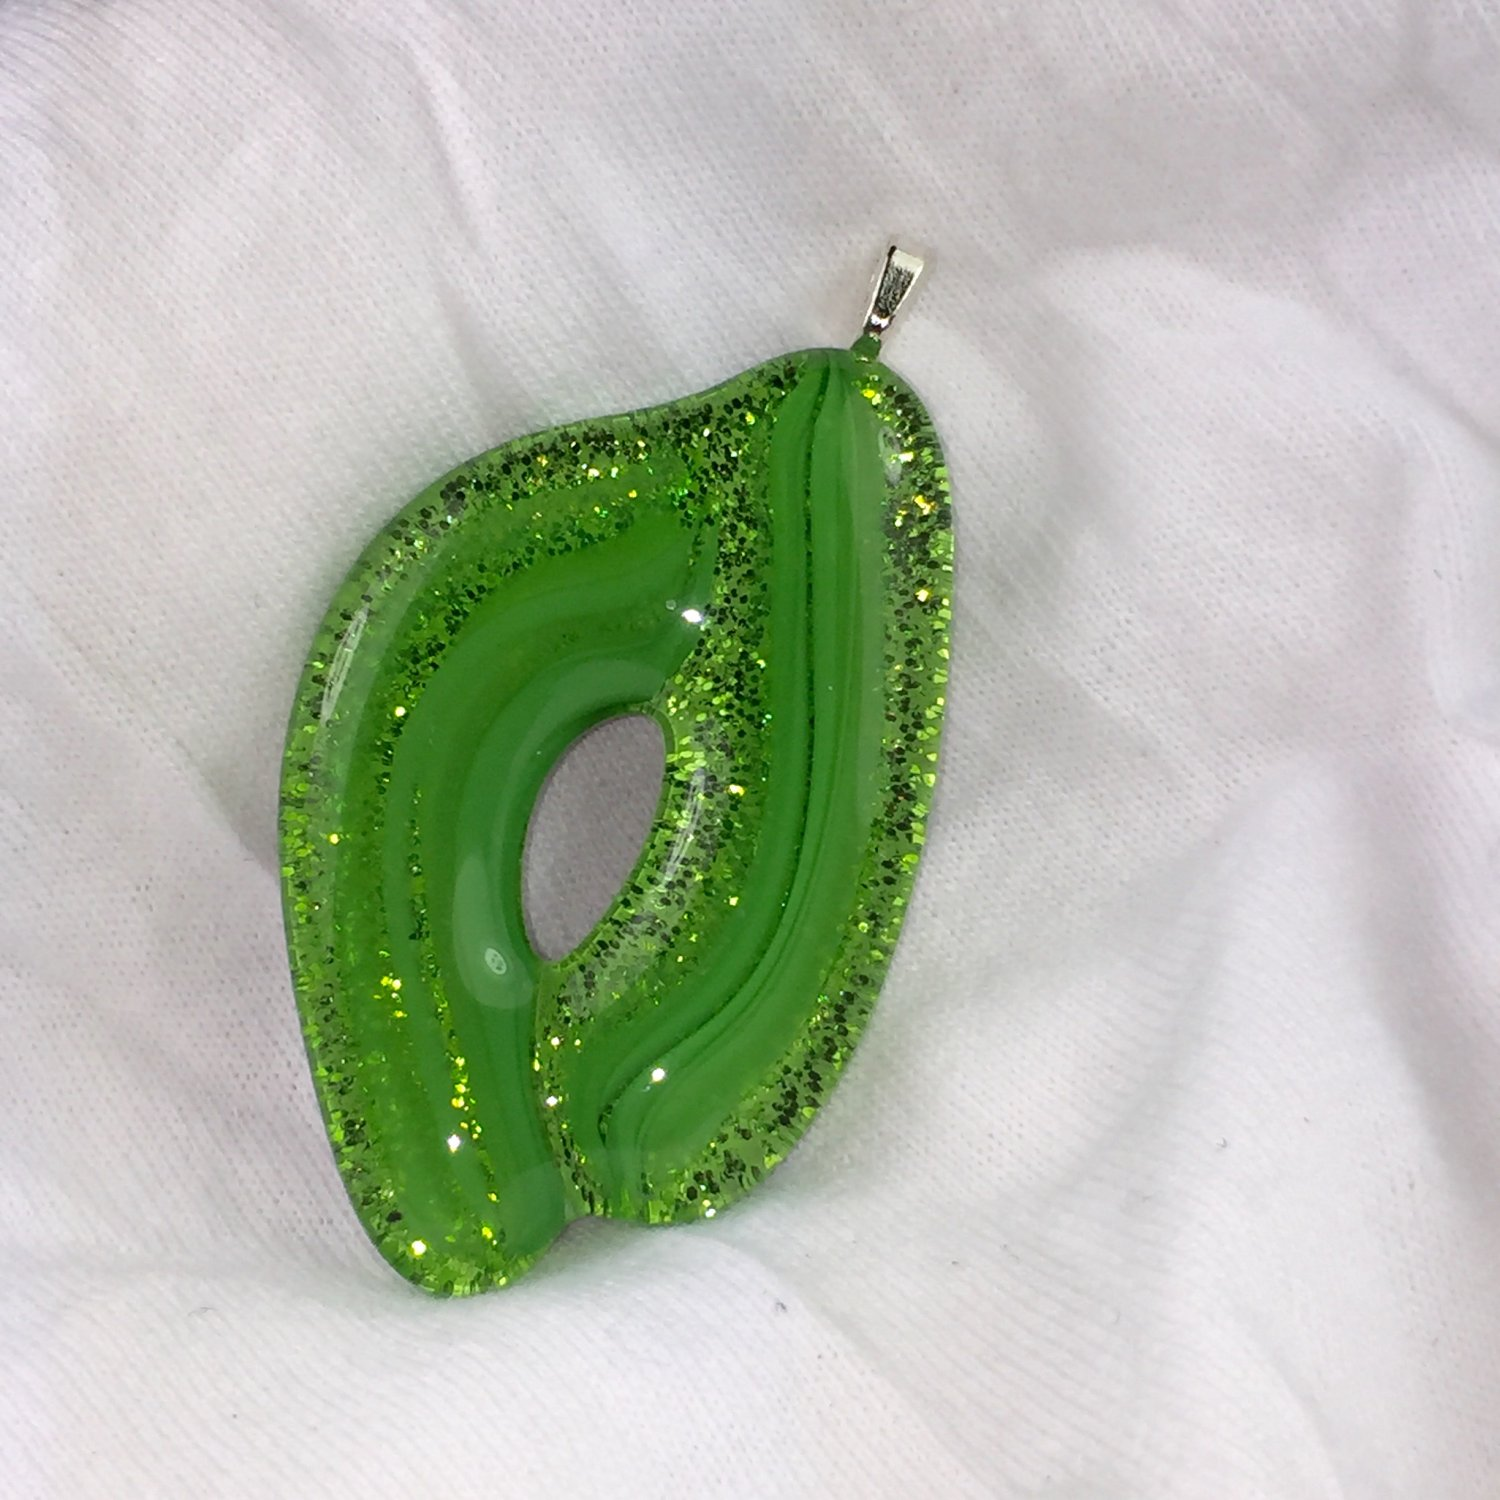 Fused Glass Green Glitter Sparkle Cabochon Pendant Choker Necklace  Hand Crafted Jewelry